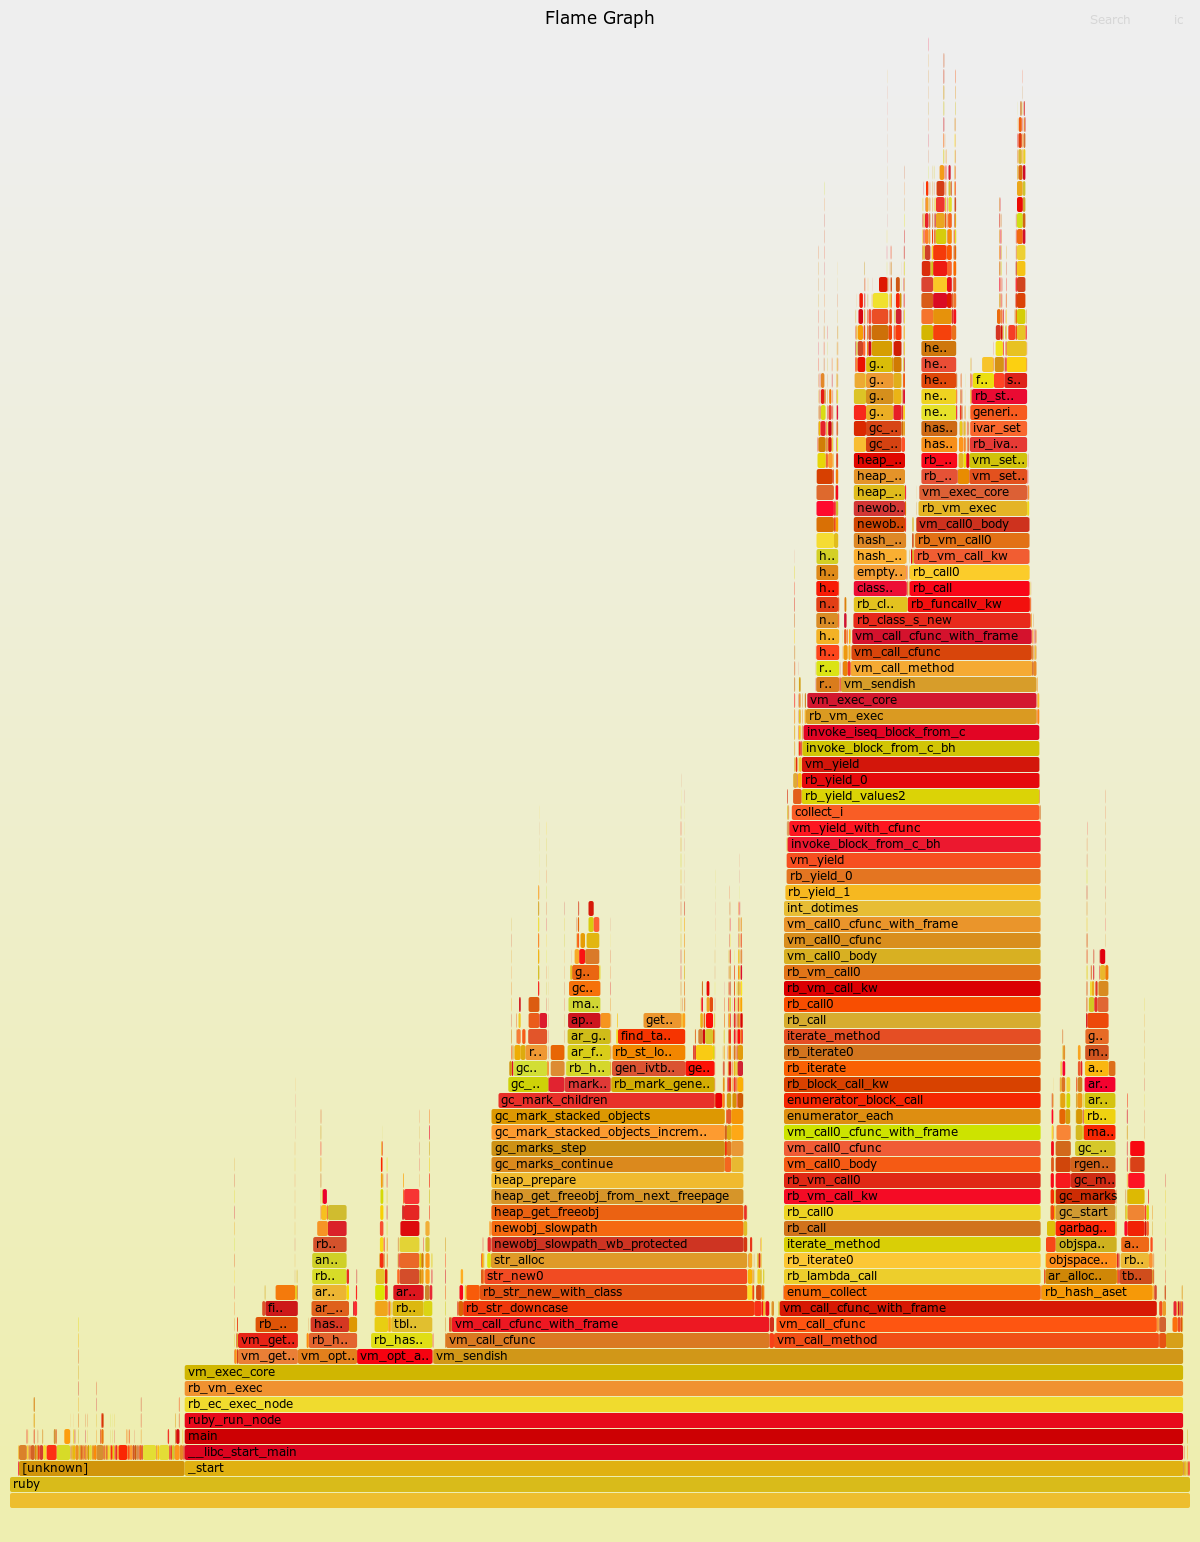 flamegraph.png